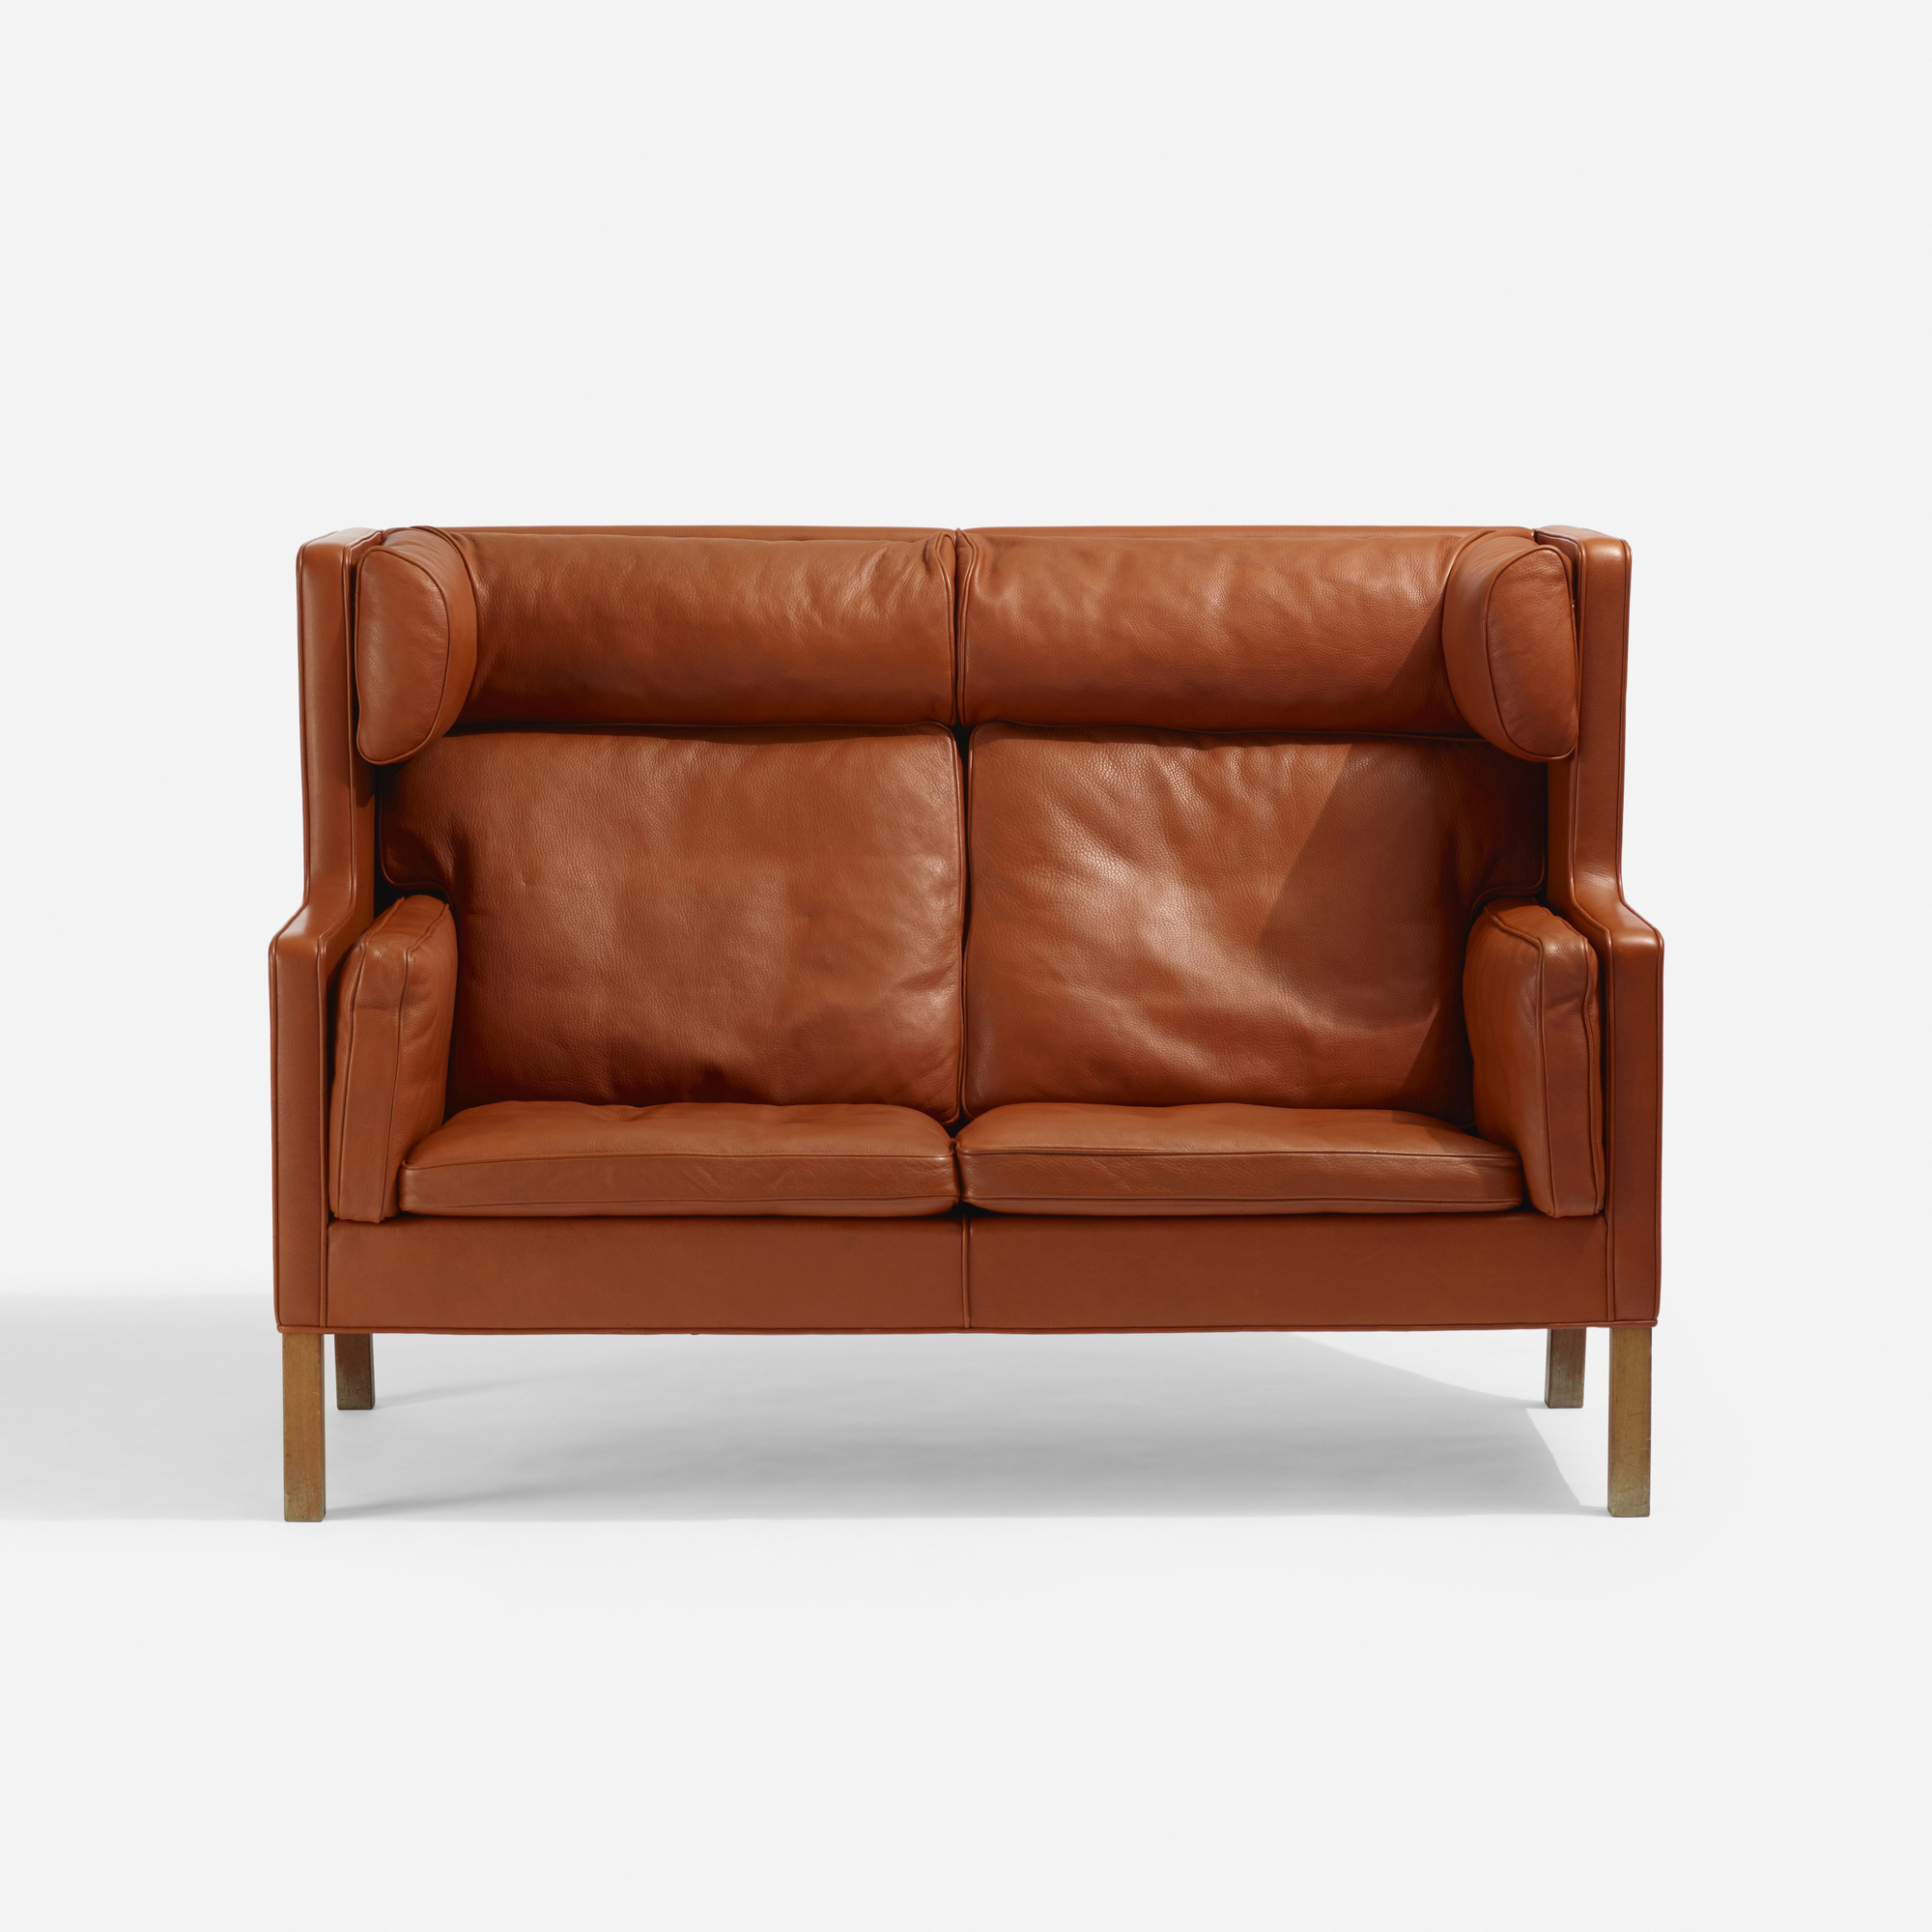 199: Børge Mogensen / Coupé settee, model 2192 (2 of 4)